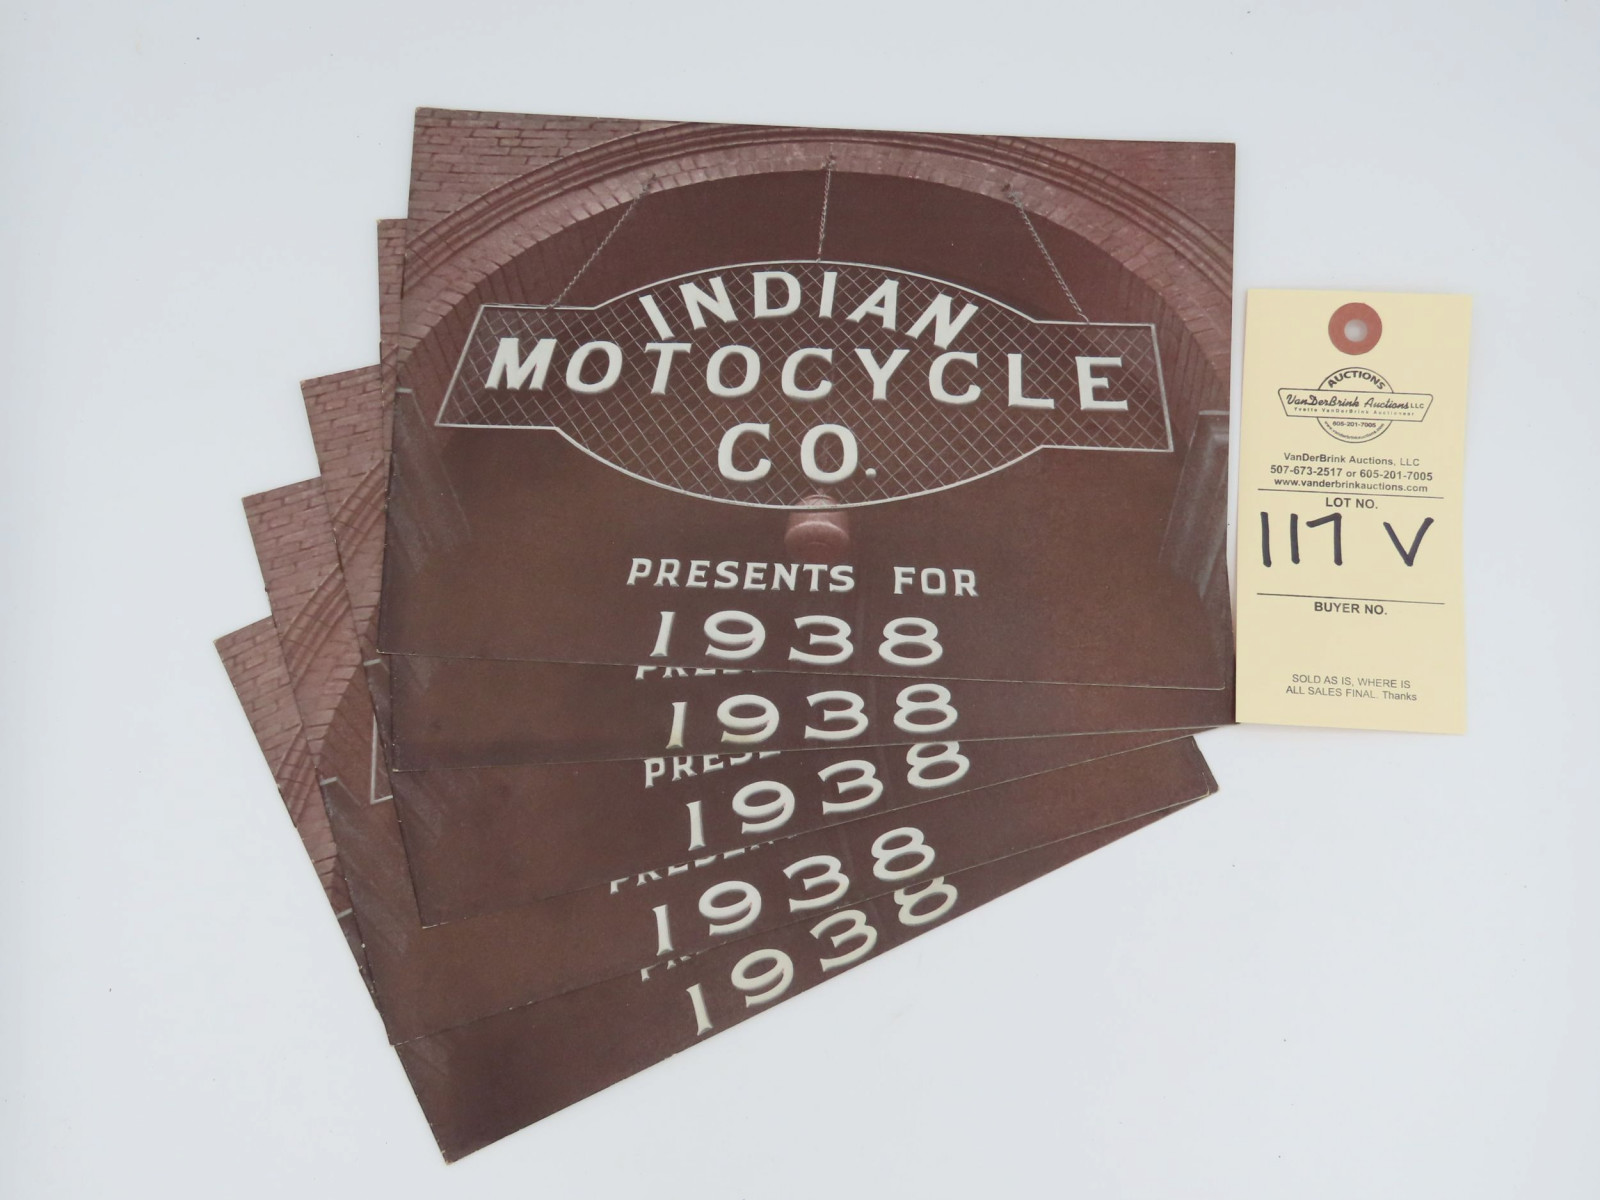 1938 Indian Motorcycle Co. dealer manual - Image 1